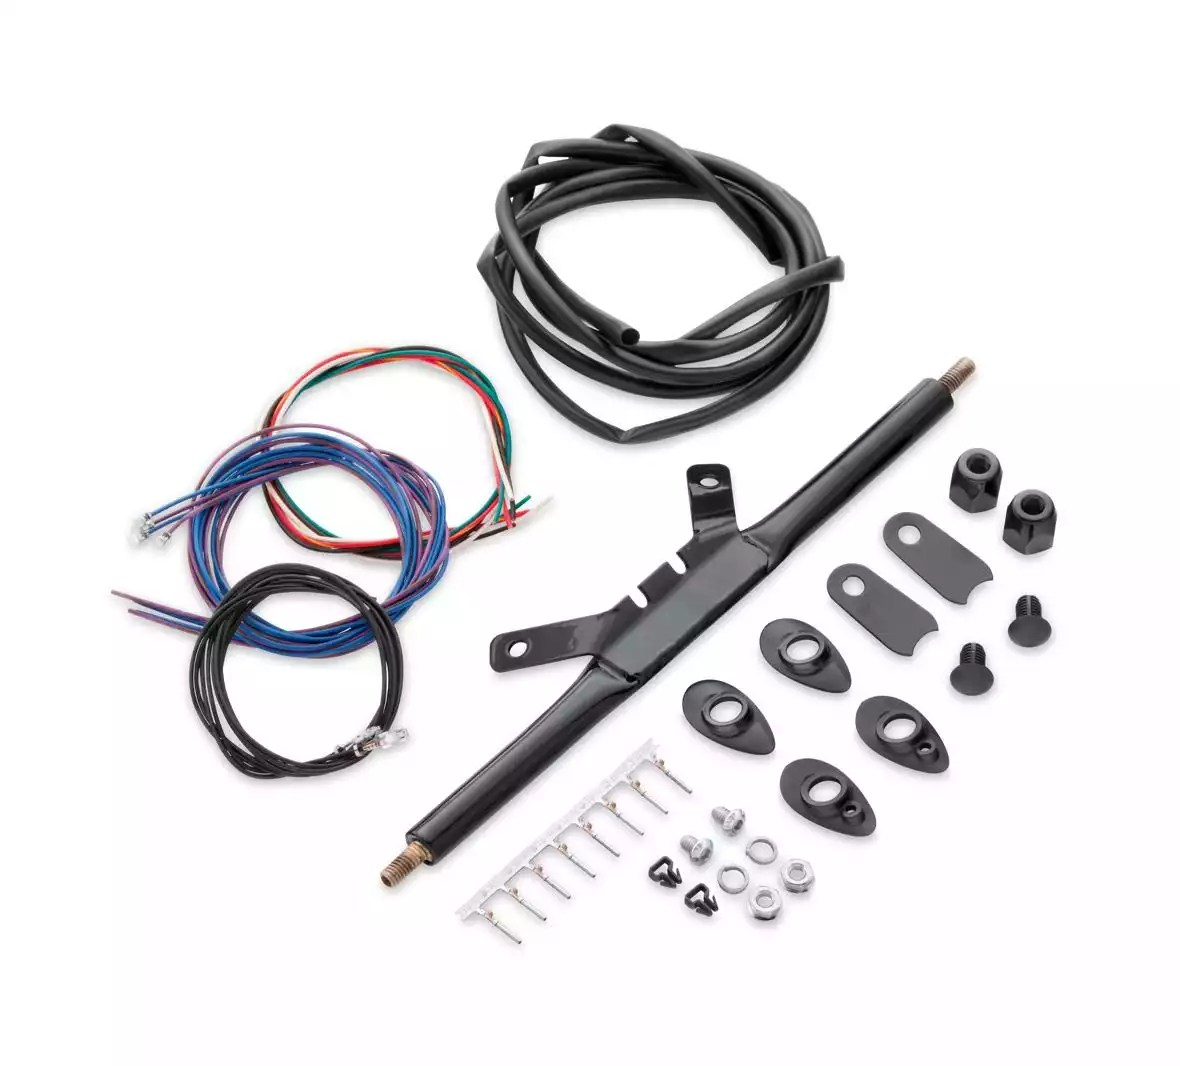 Turn Signal Relocation Kit At Thunderbike Shop